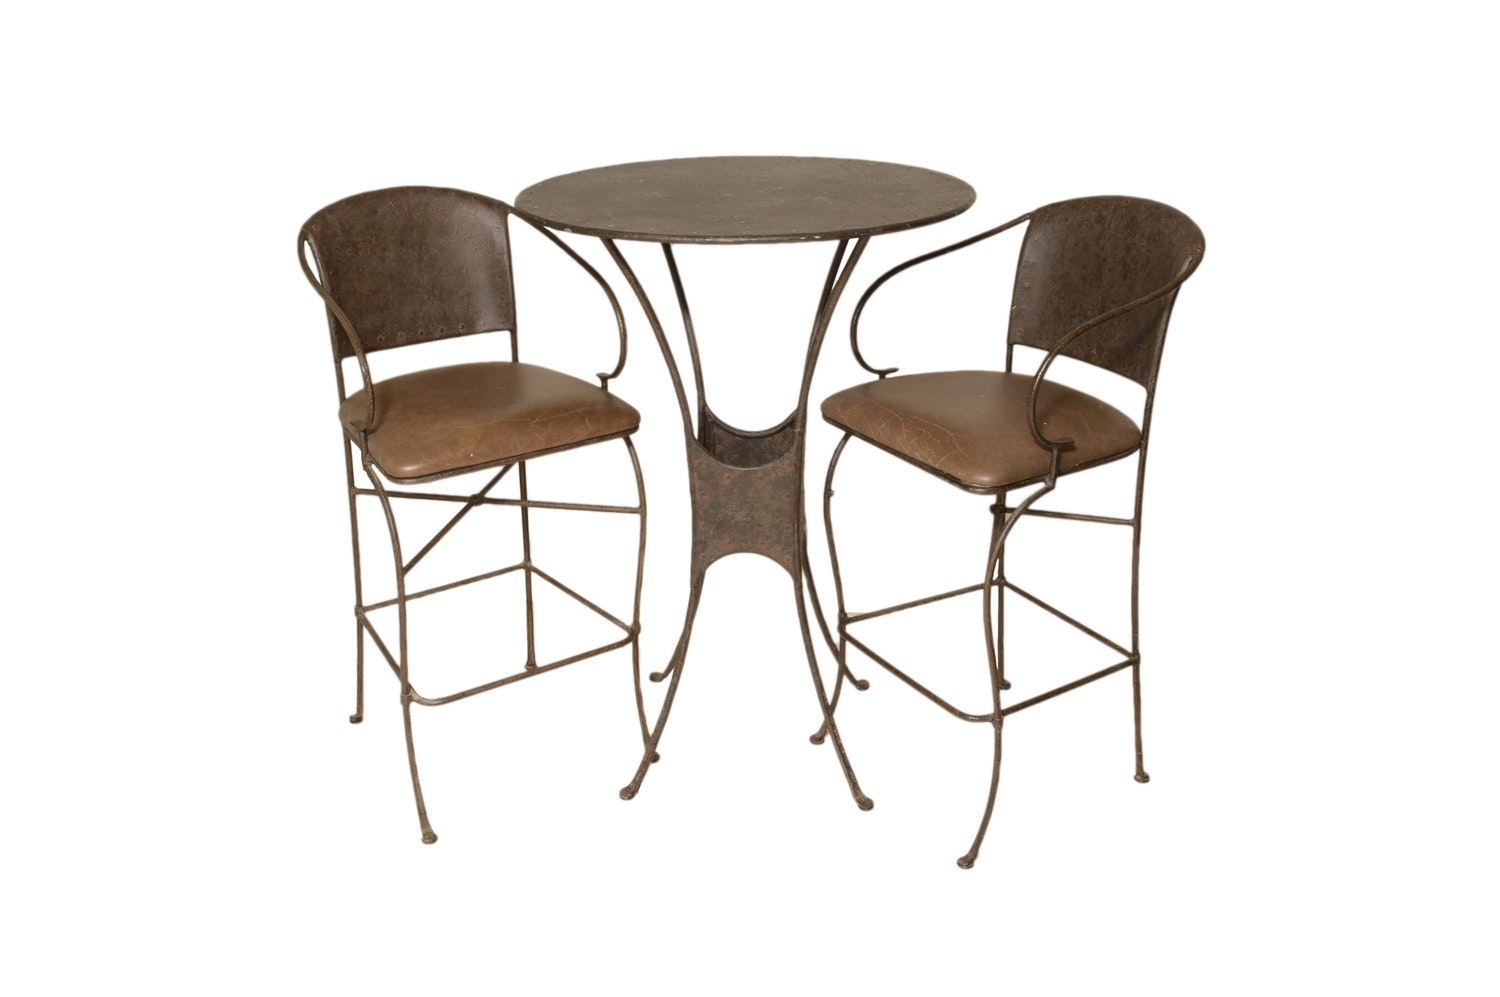 Contemporary Metal Pub Table and Chairs by Pier 1